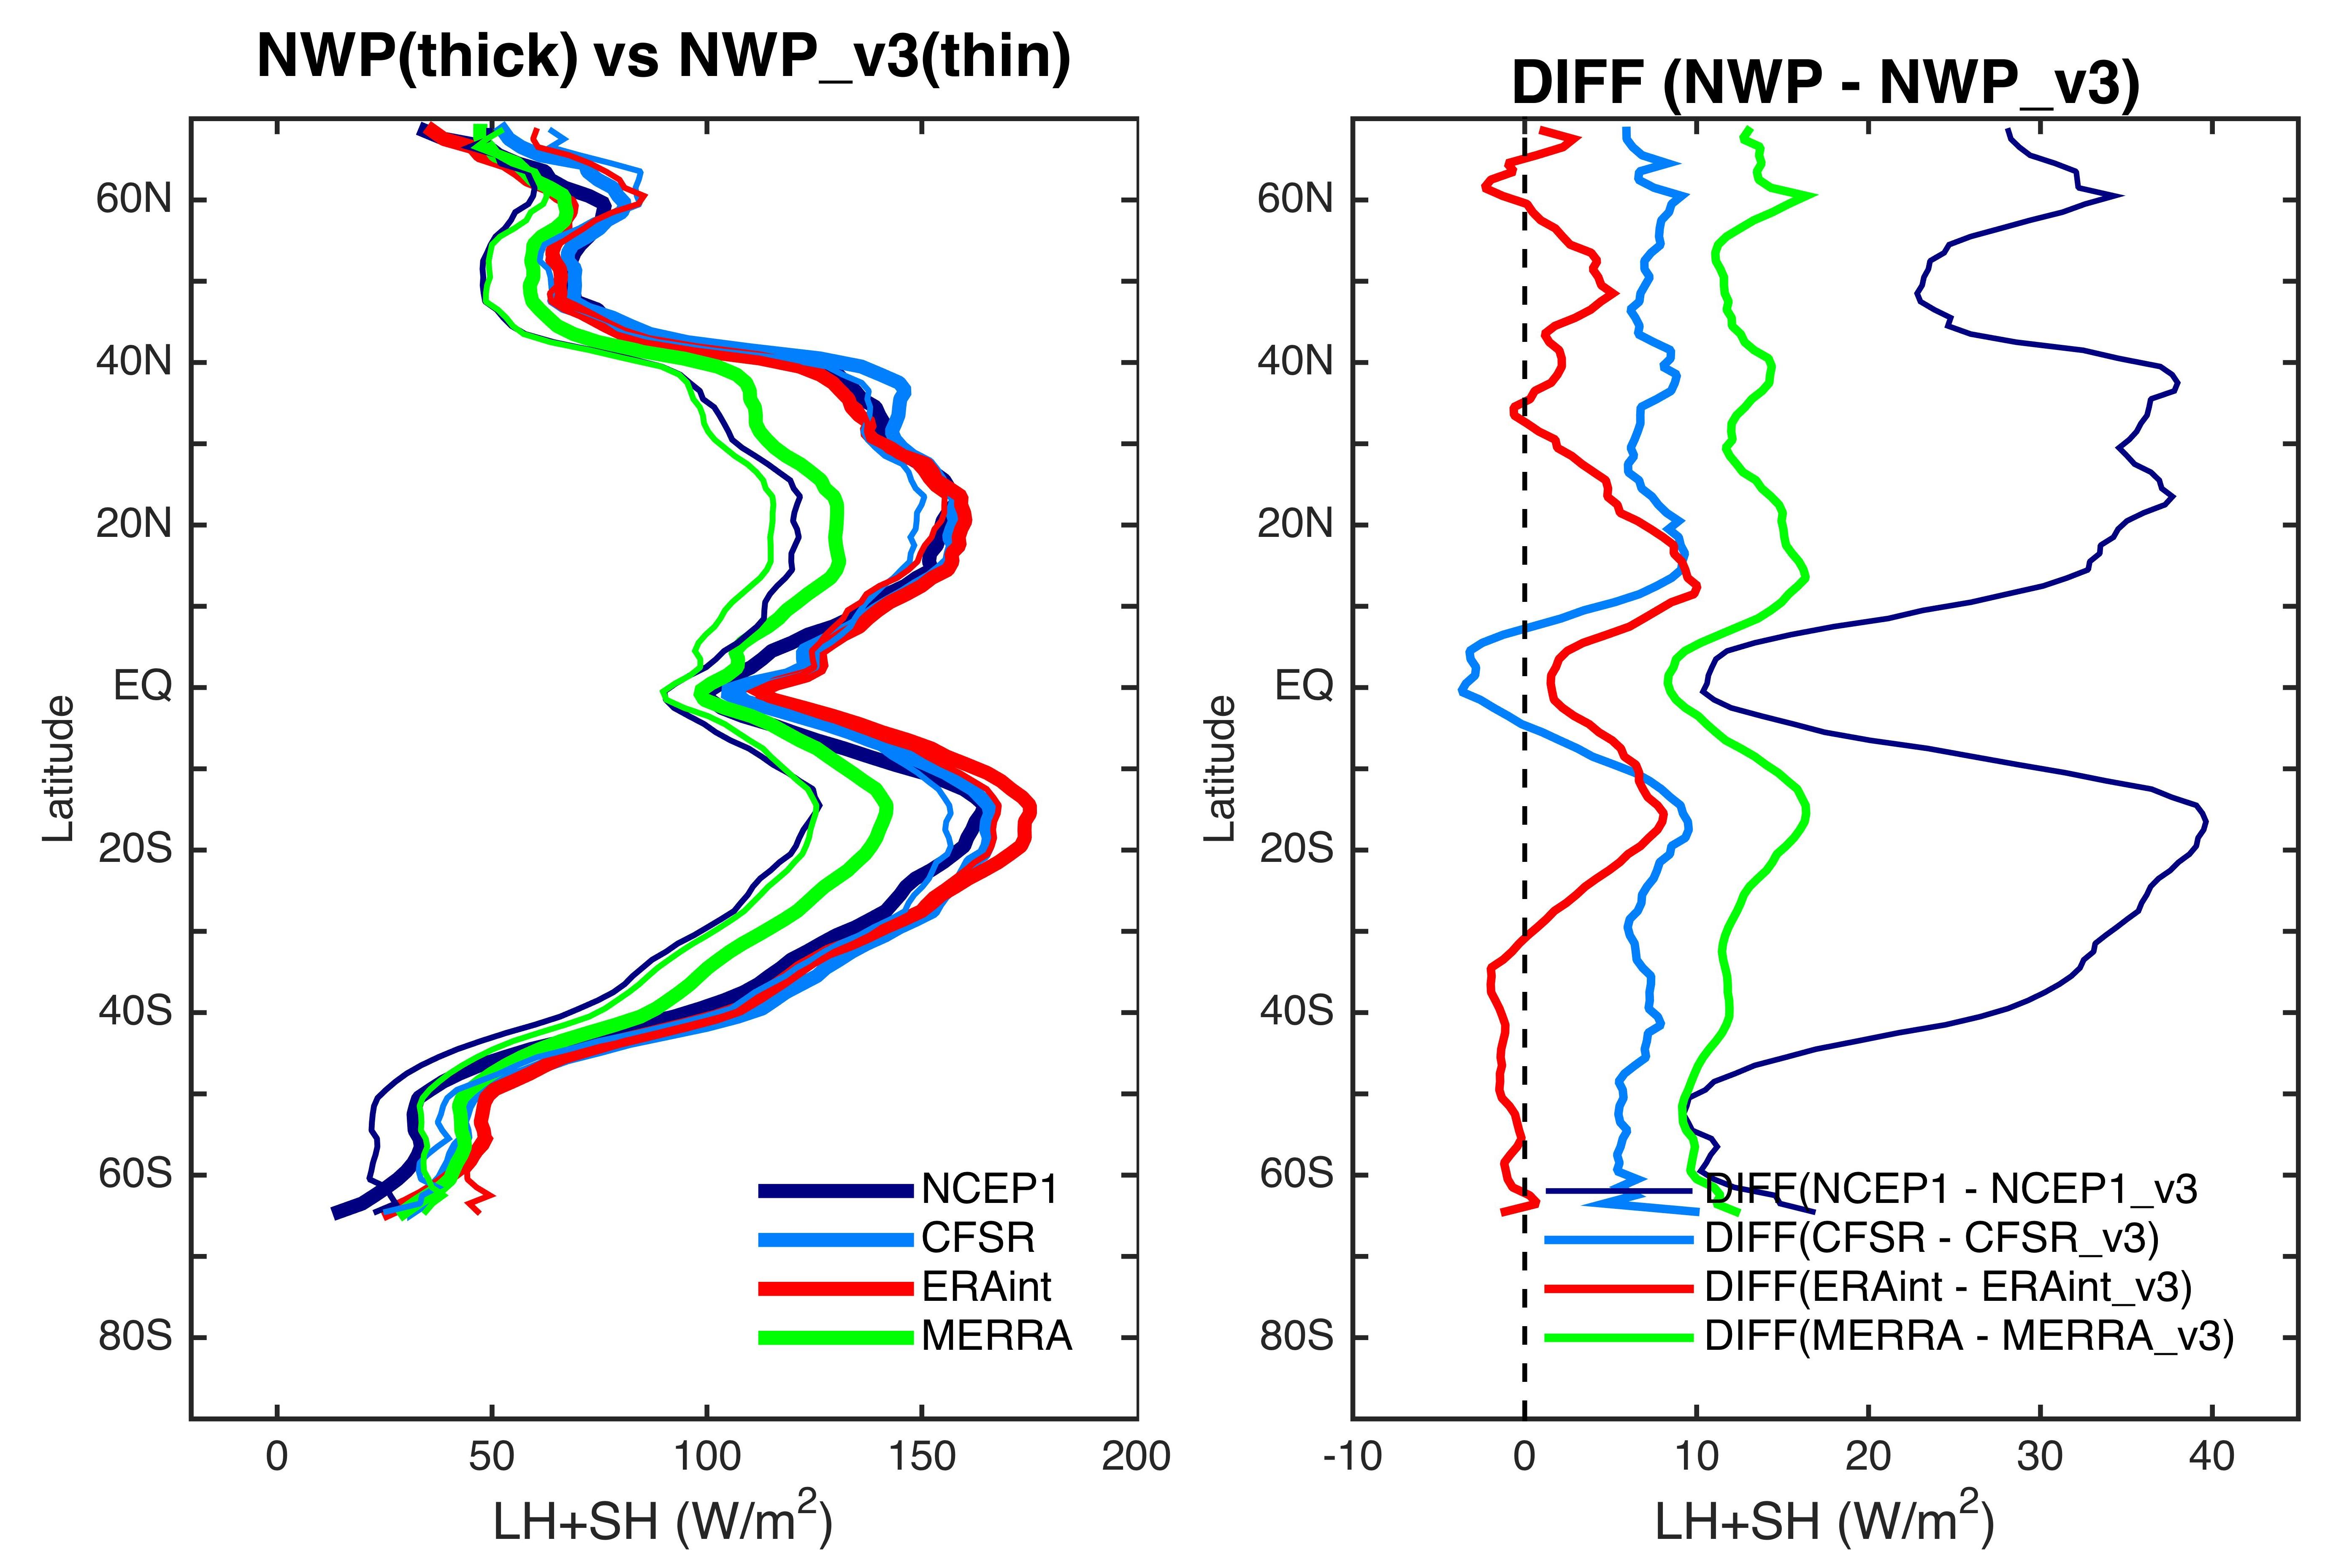 Figure 1. Zonally averaged mean latent and sensible heat fluxes.   (Left) Original reanalysis fluxes (solid lines) and the COARE v3–based reanalysis fluxes (dashed lines). It shows that indicate that COARE v3 is a weak algorithm compared with the four reanalysis algorithms.   (right) Differences between the original NWP fluxes and the recomputed fluxes using NWP variables as input to the COARE v3 algorithm. It shows that the ERA-Interim algorithm is the closest to COARE v3, and the differences are mostly within 5 W m−2 except for a 10 W m−2 spike at approximately 15◦N/S. The NCEP1 algorithm has the largest departure from COARE v3, with a magnitude approaching 40 W m−2 at subtropical latitudes. The CFSR and MERRA algorithms are approximately 8 and 12 W m−2 stronger, respectively, at most latitudes.